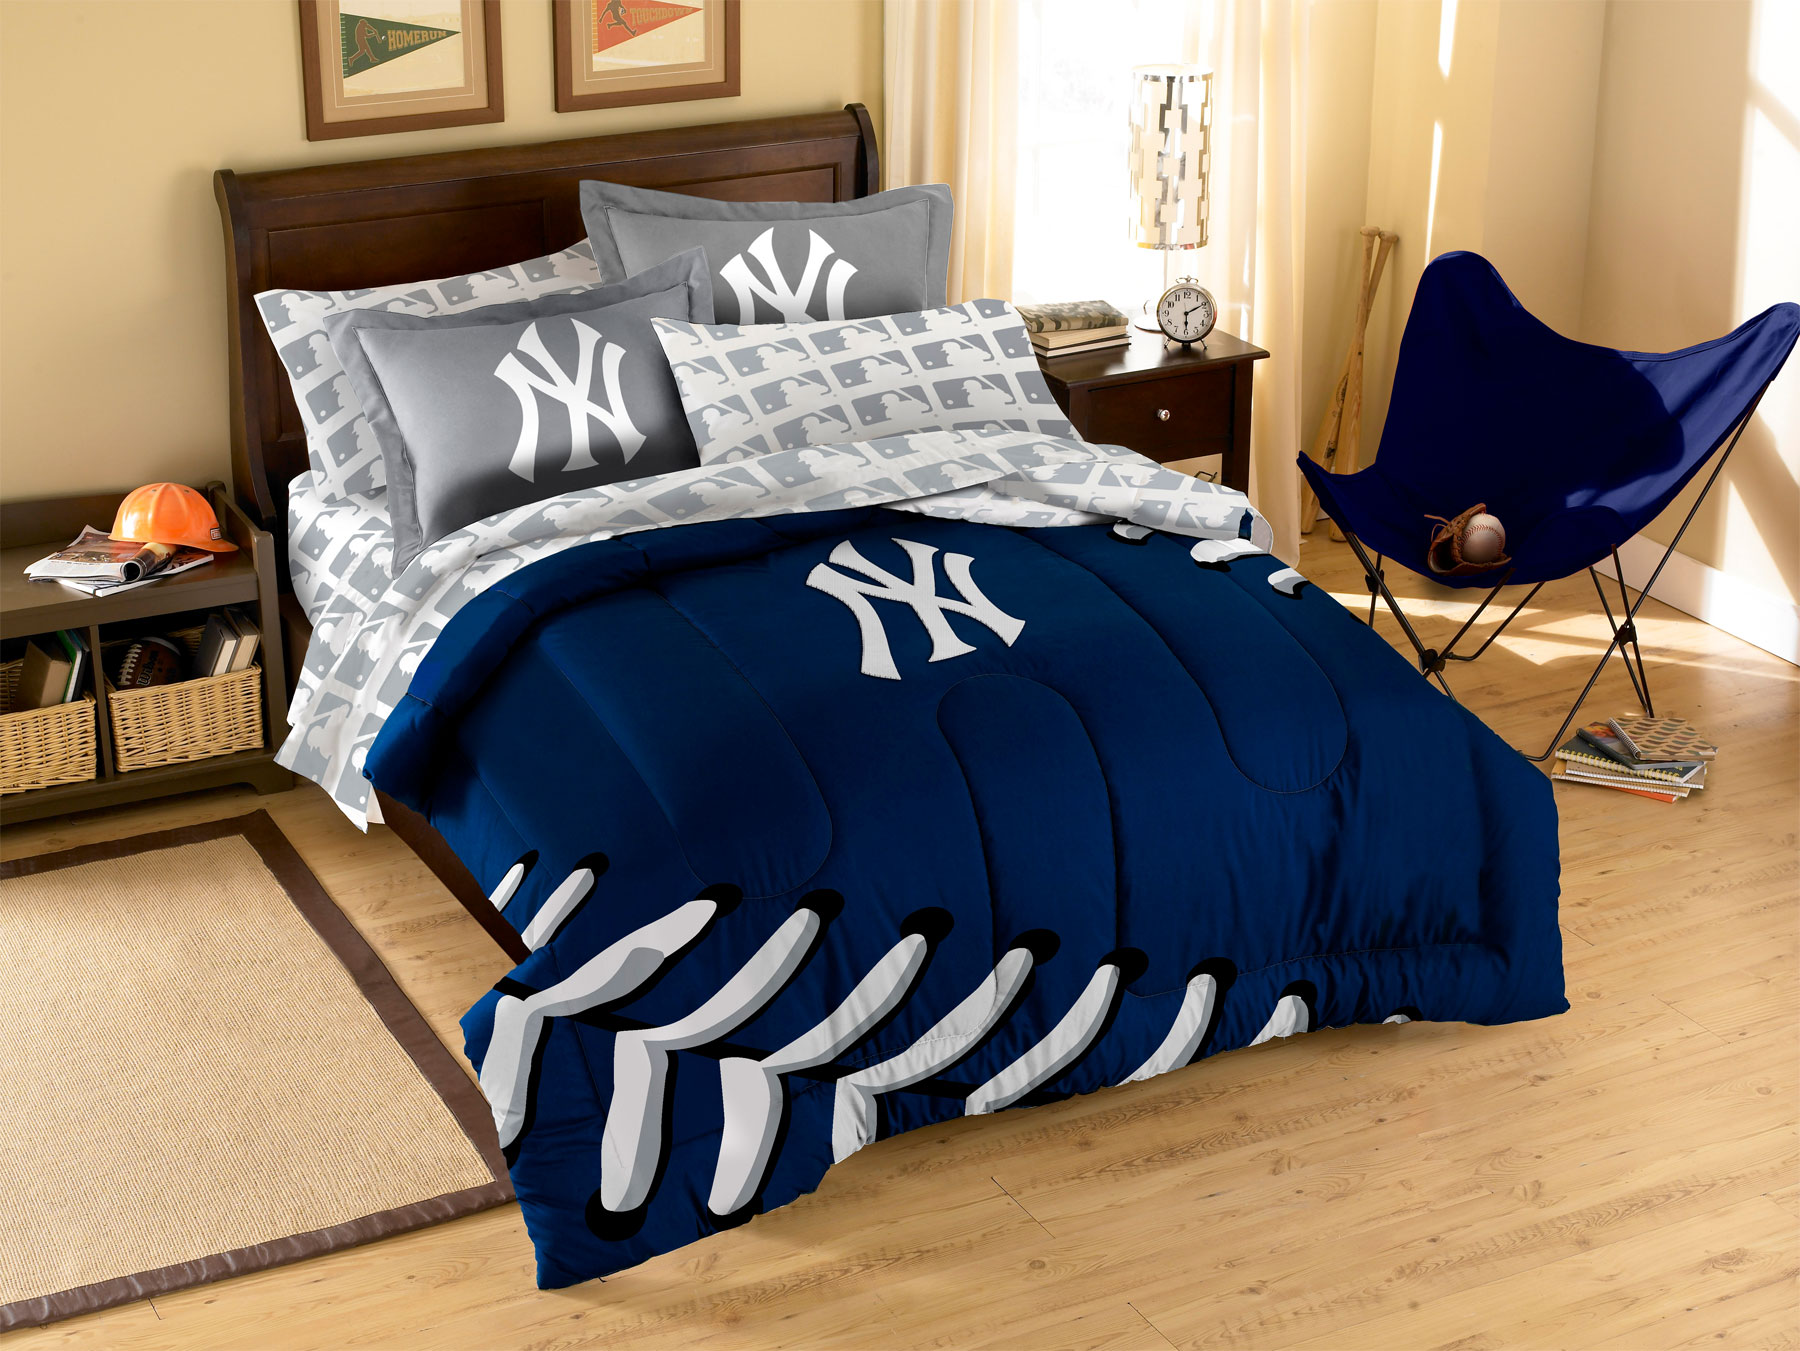 york yankees full bedding set mlb ny baseball comforter sheets decor